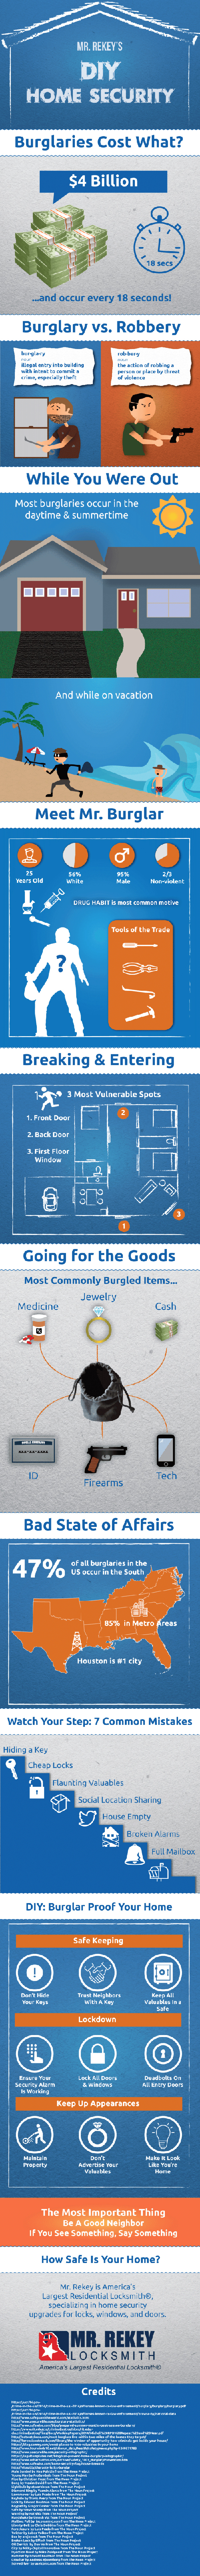 DIY Home security infographic